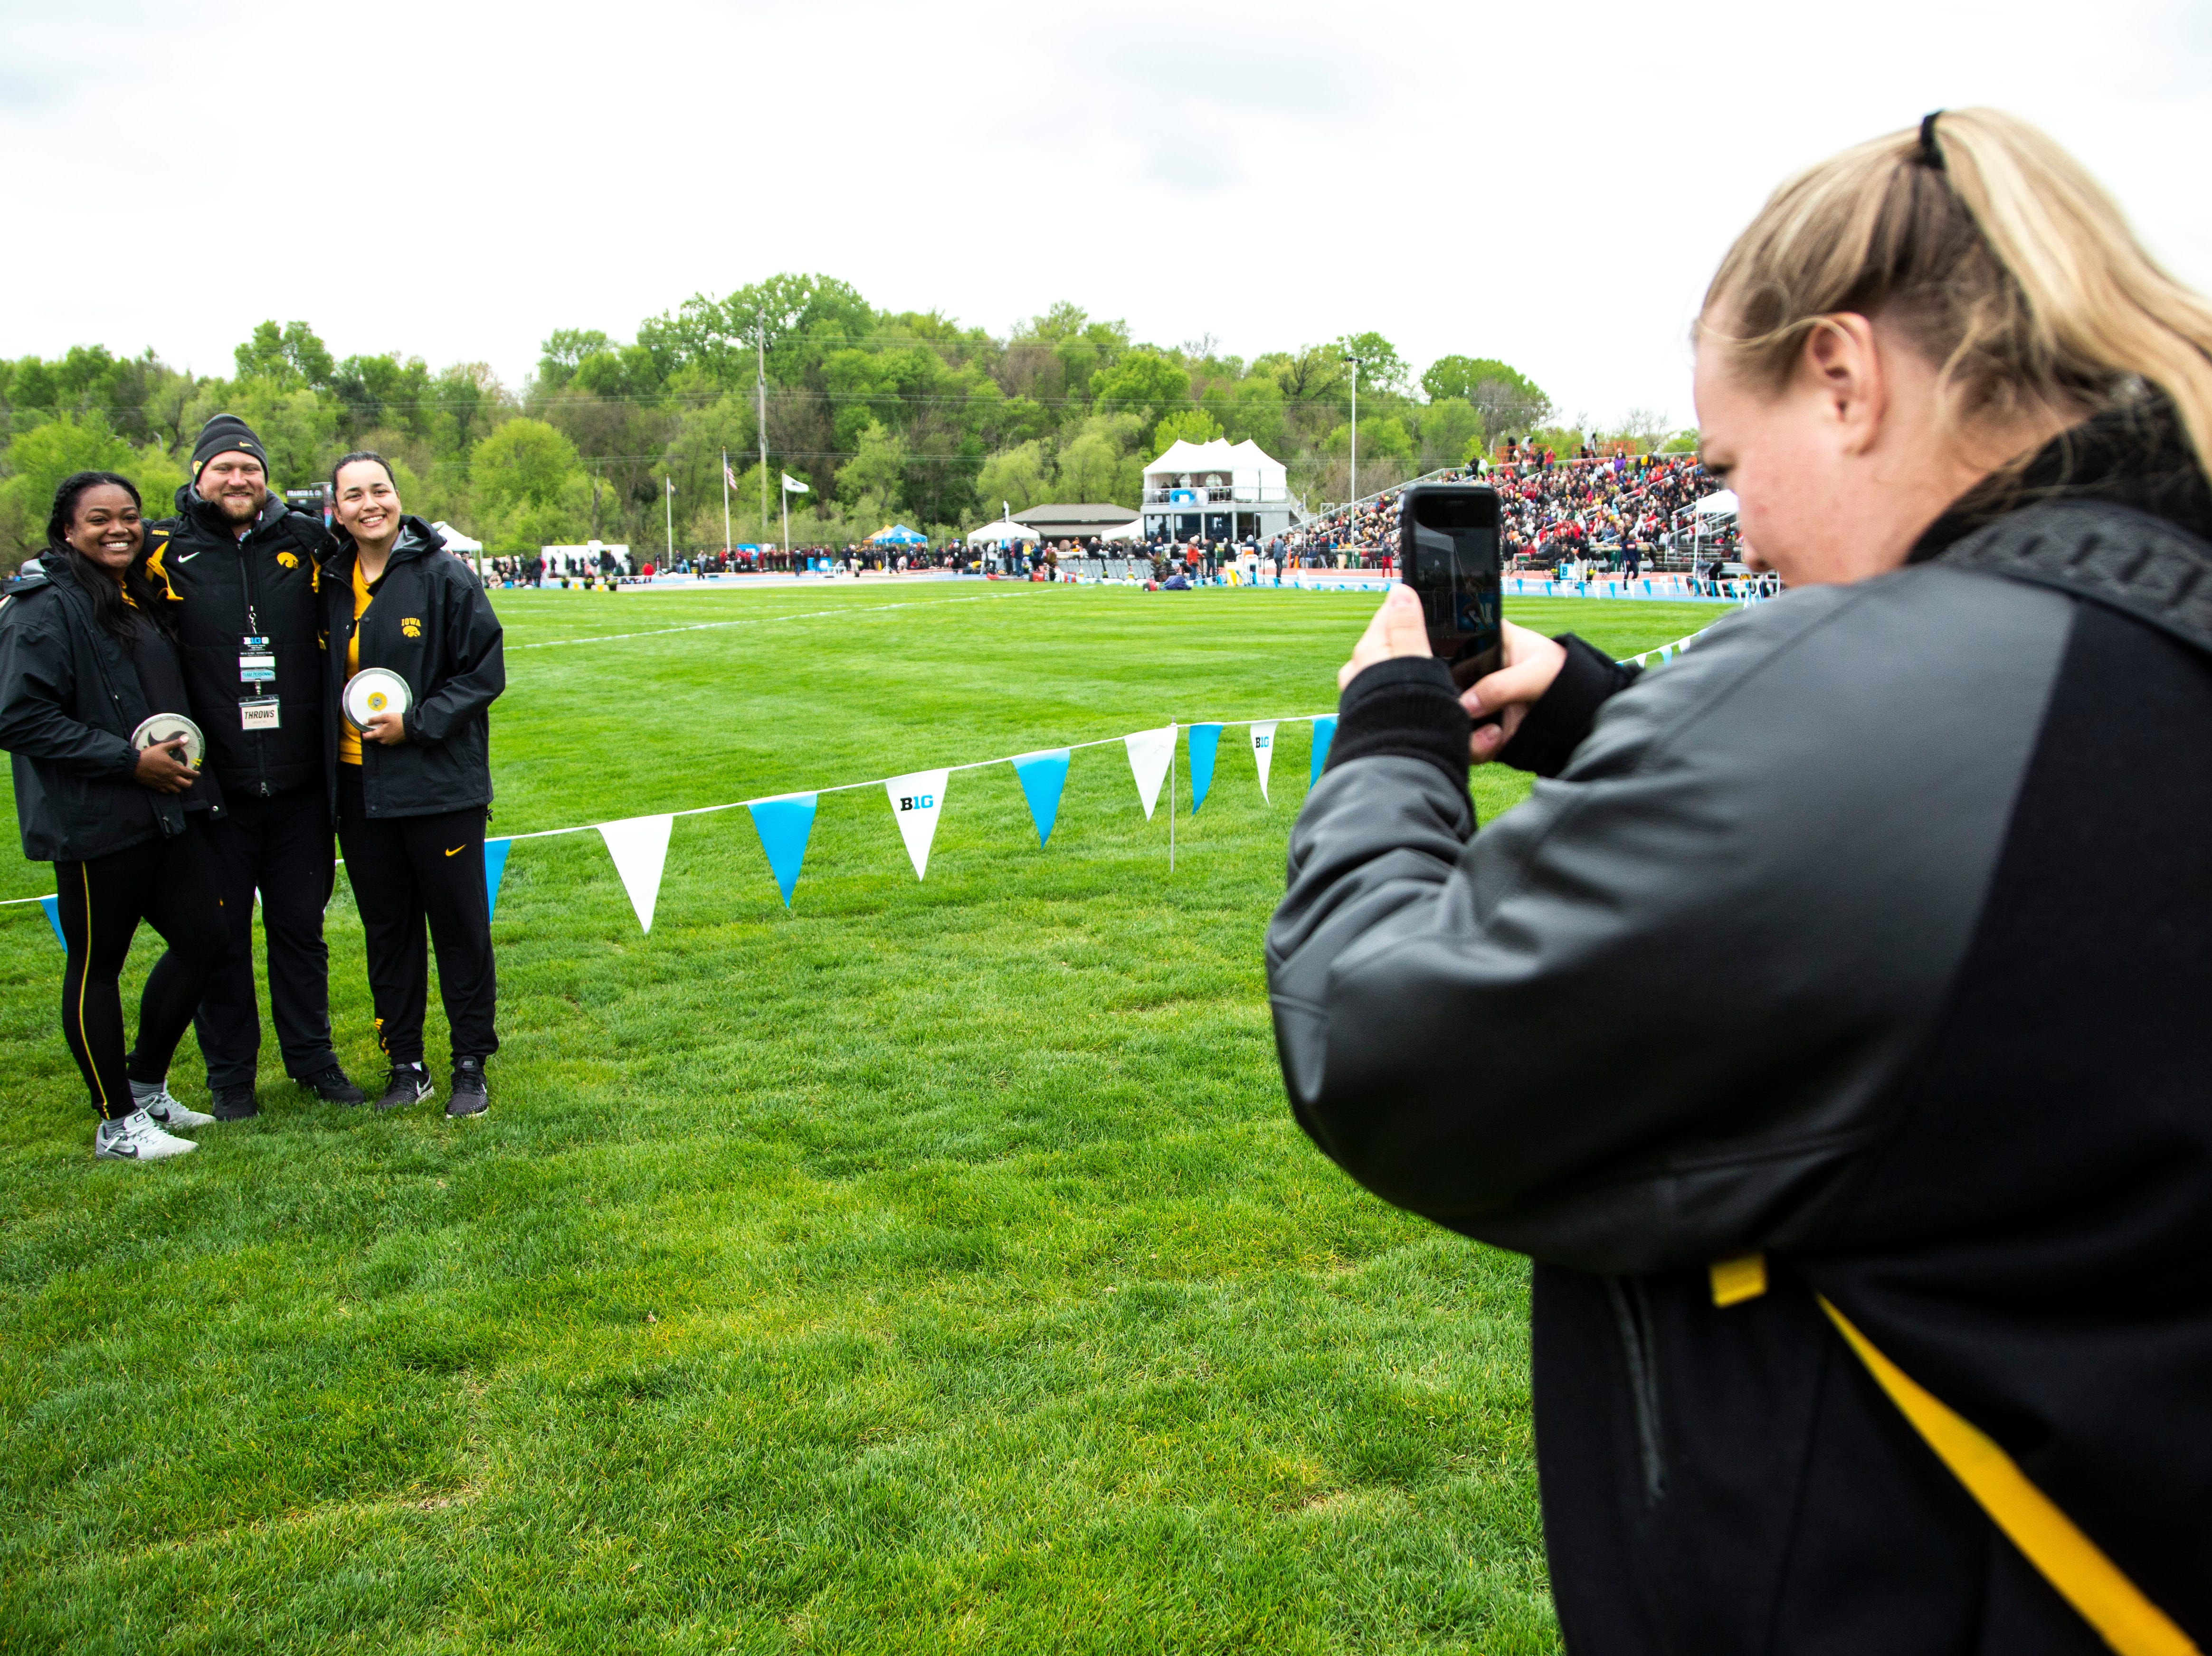 Iowa's Laulauga Tausaga, left, poses for a photo with coach Eric Werskey and teammate Konstadina Spanoudakis after taking first and second in discus during the final day of Big Ten track and field outdoor championships, Sunday, May 12, 2019, at Francis X. Cretzmeyer Track on the University of Iowa campus in Iowa City, Iowa.